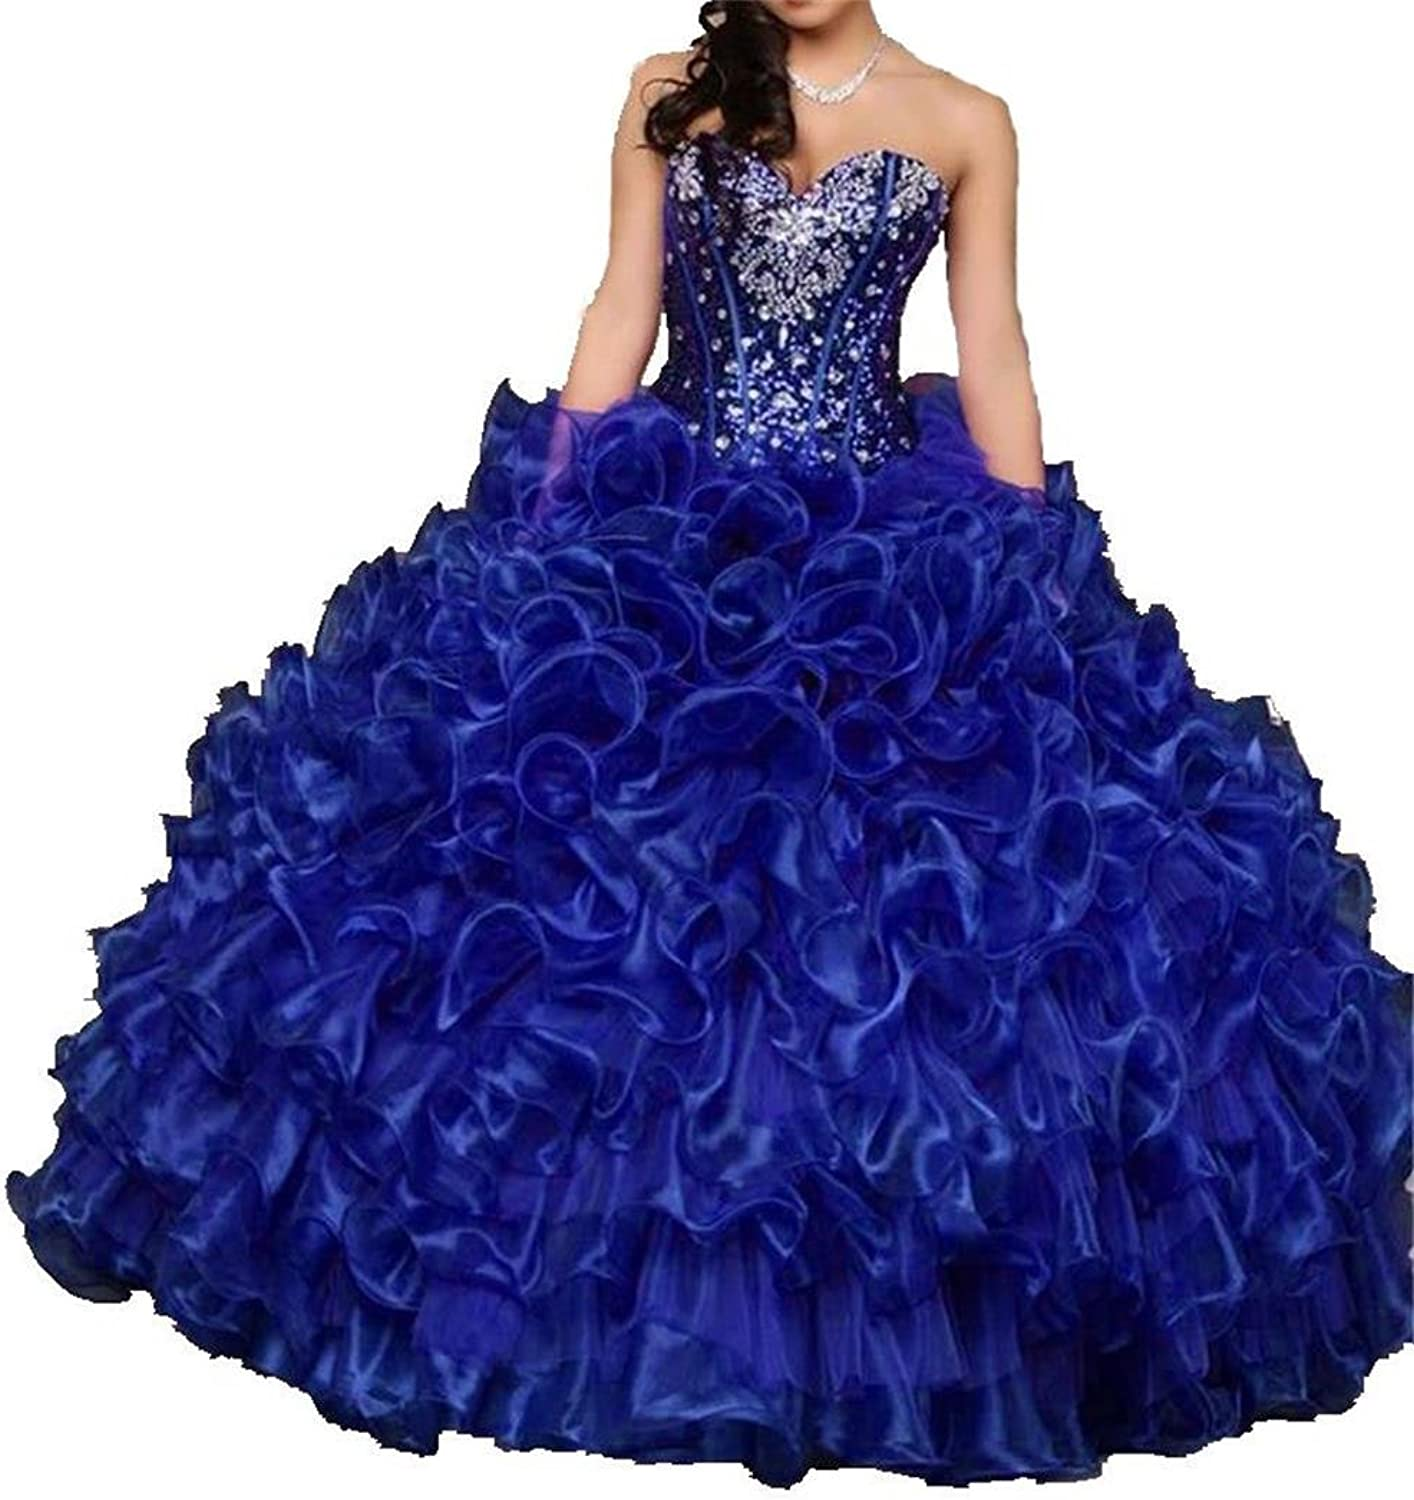 Dydsz Women's Quinceanera Dresses Beaded Ball Gown Prom Party Dress Juniors D15